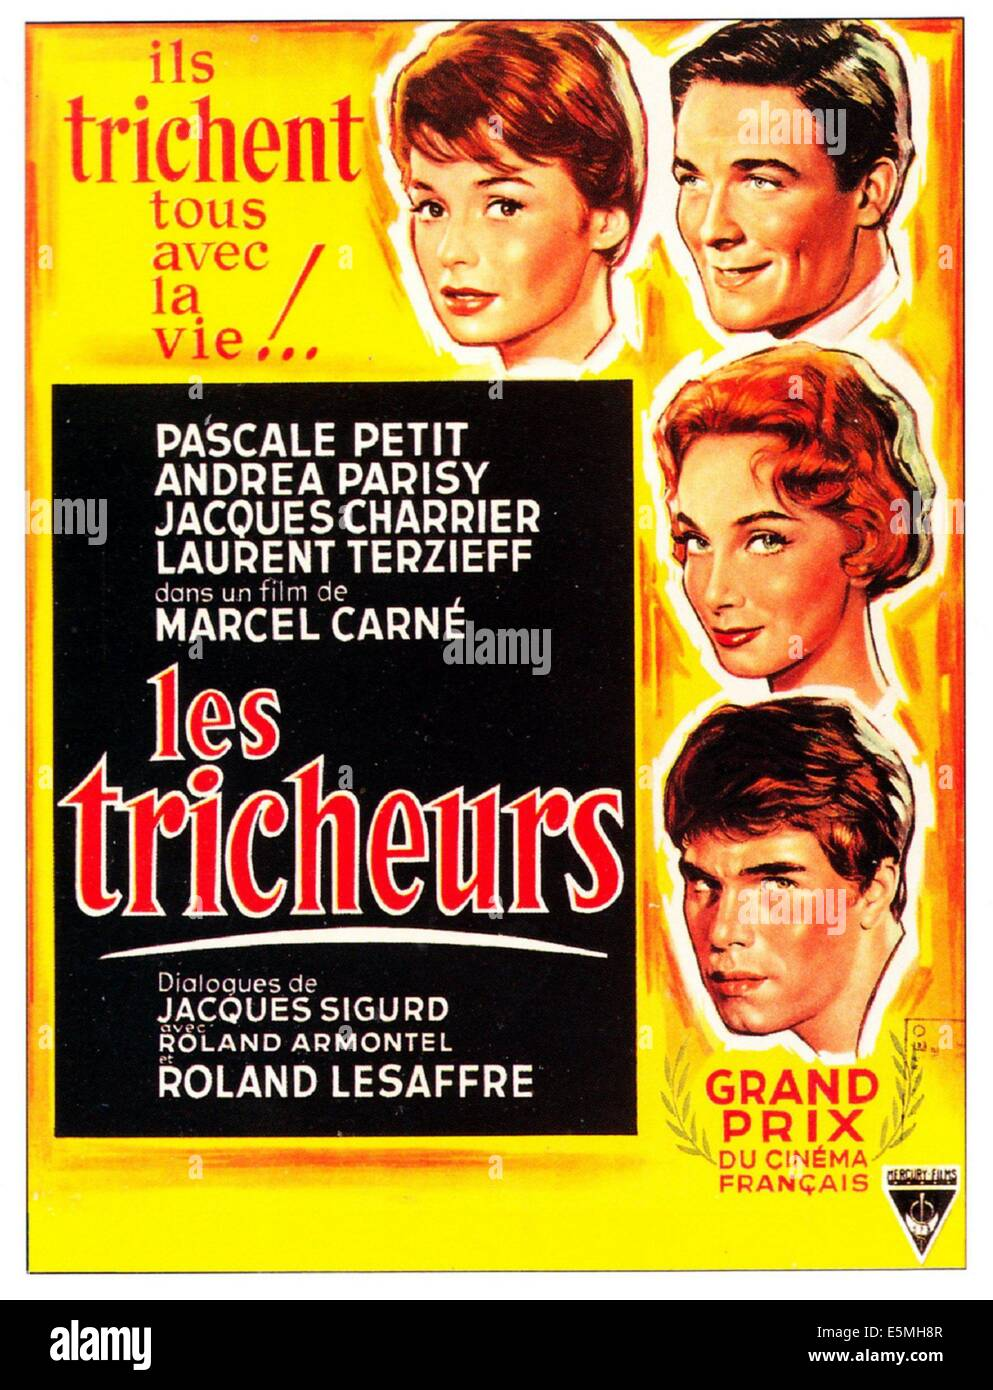 LES TRICHEURS( aka YOUTHFUL SINNERS)French poster art, 1958. - Stock Image